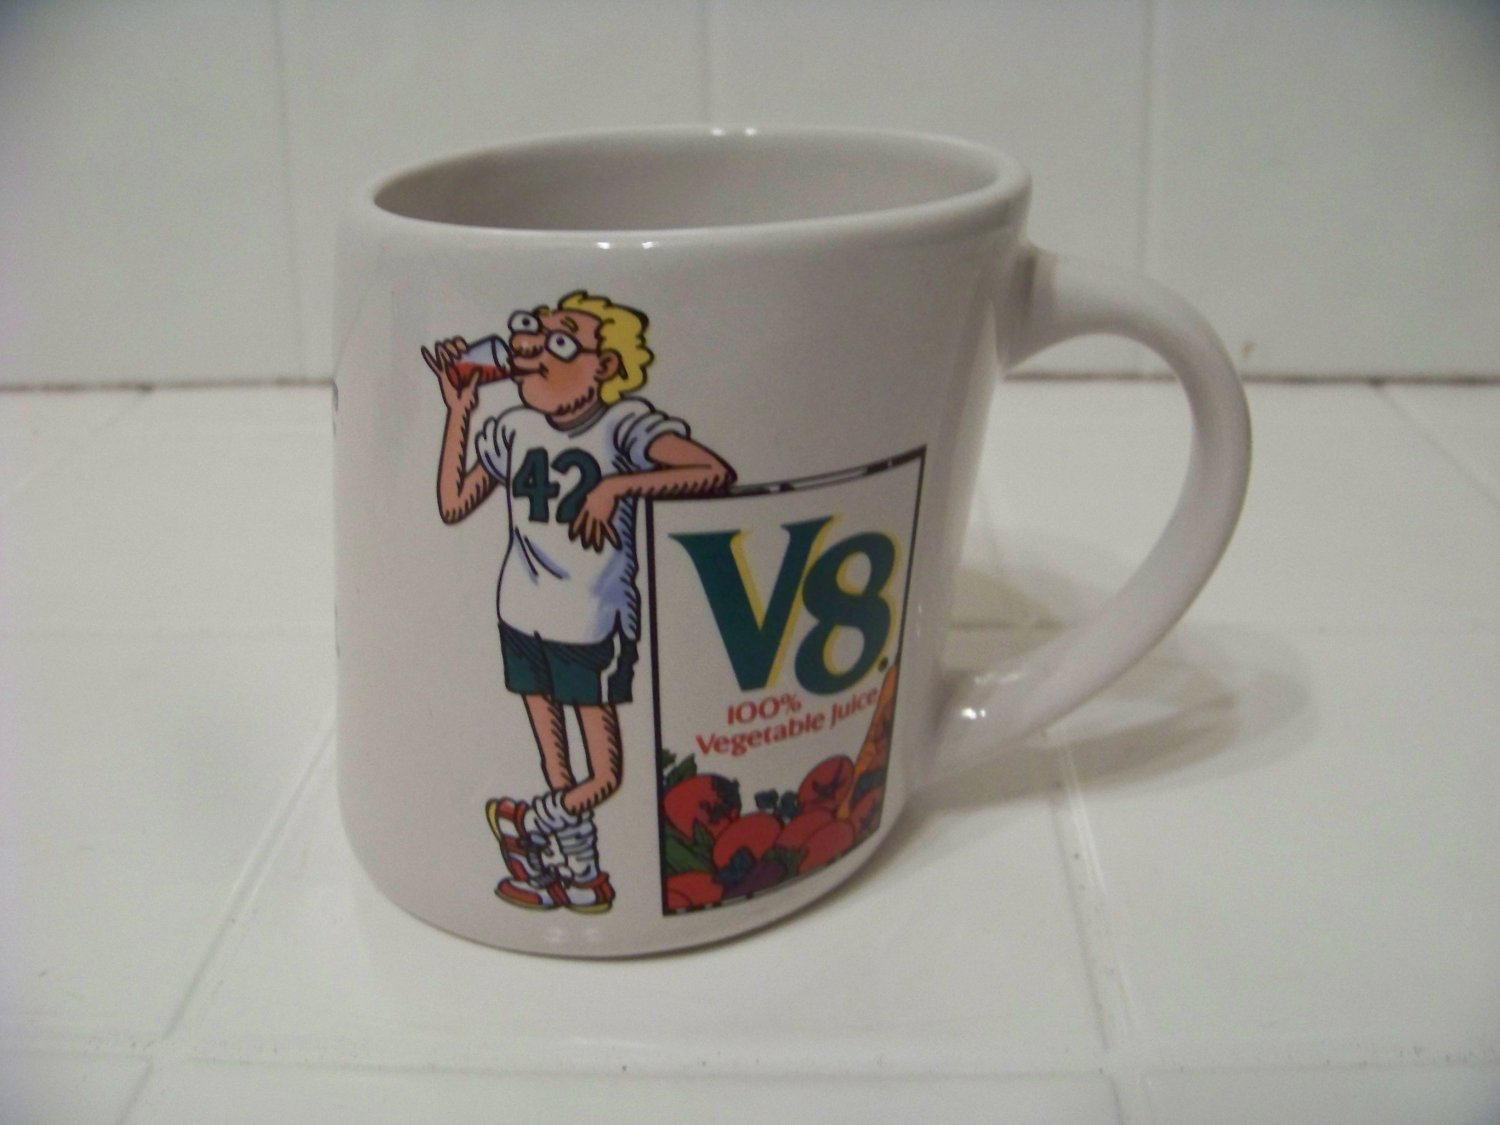 slanty v8 vegetable juice advertising cup mug